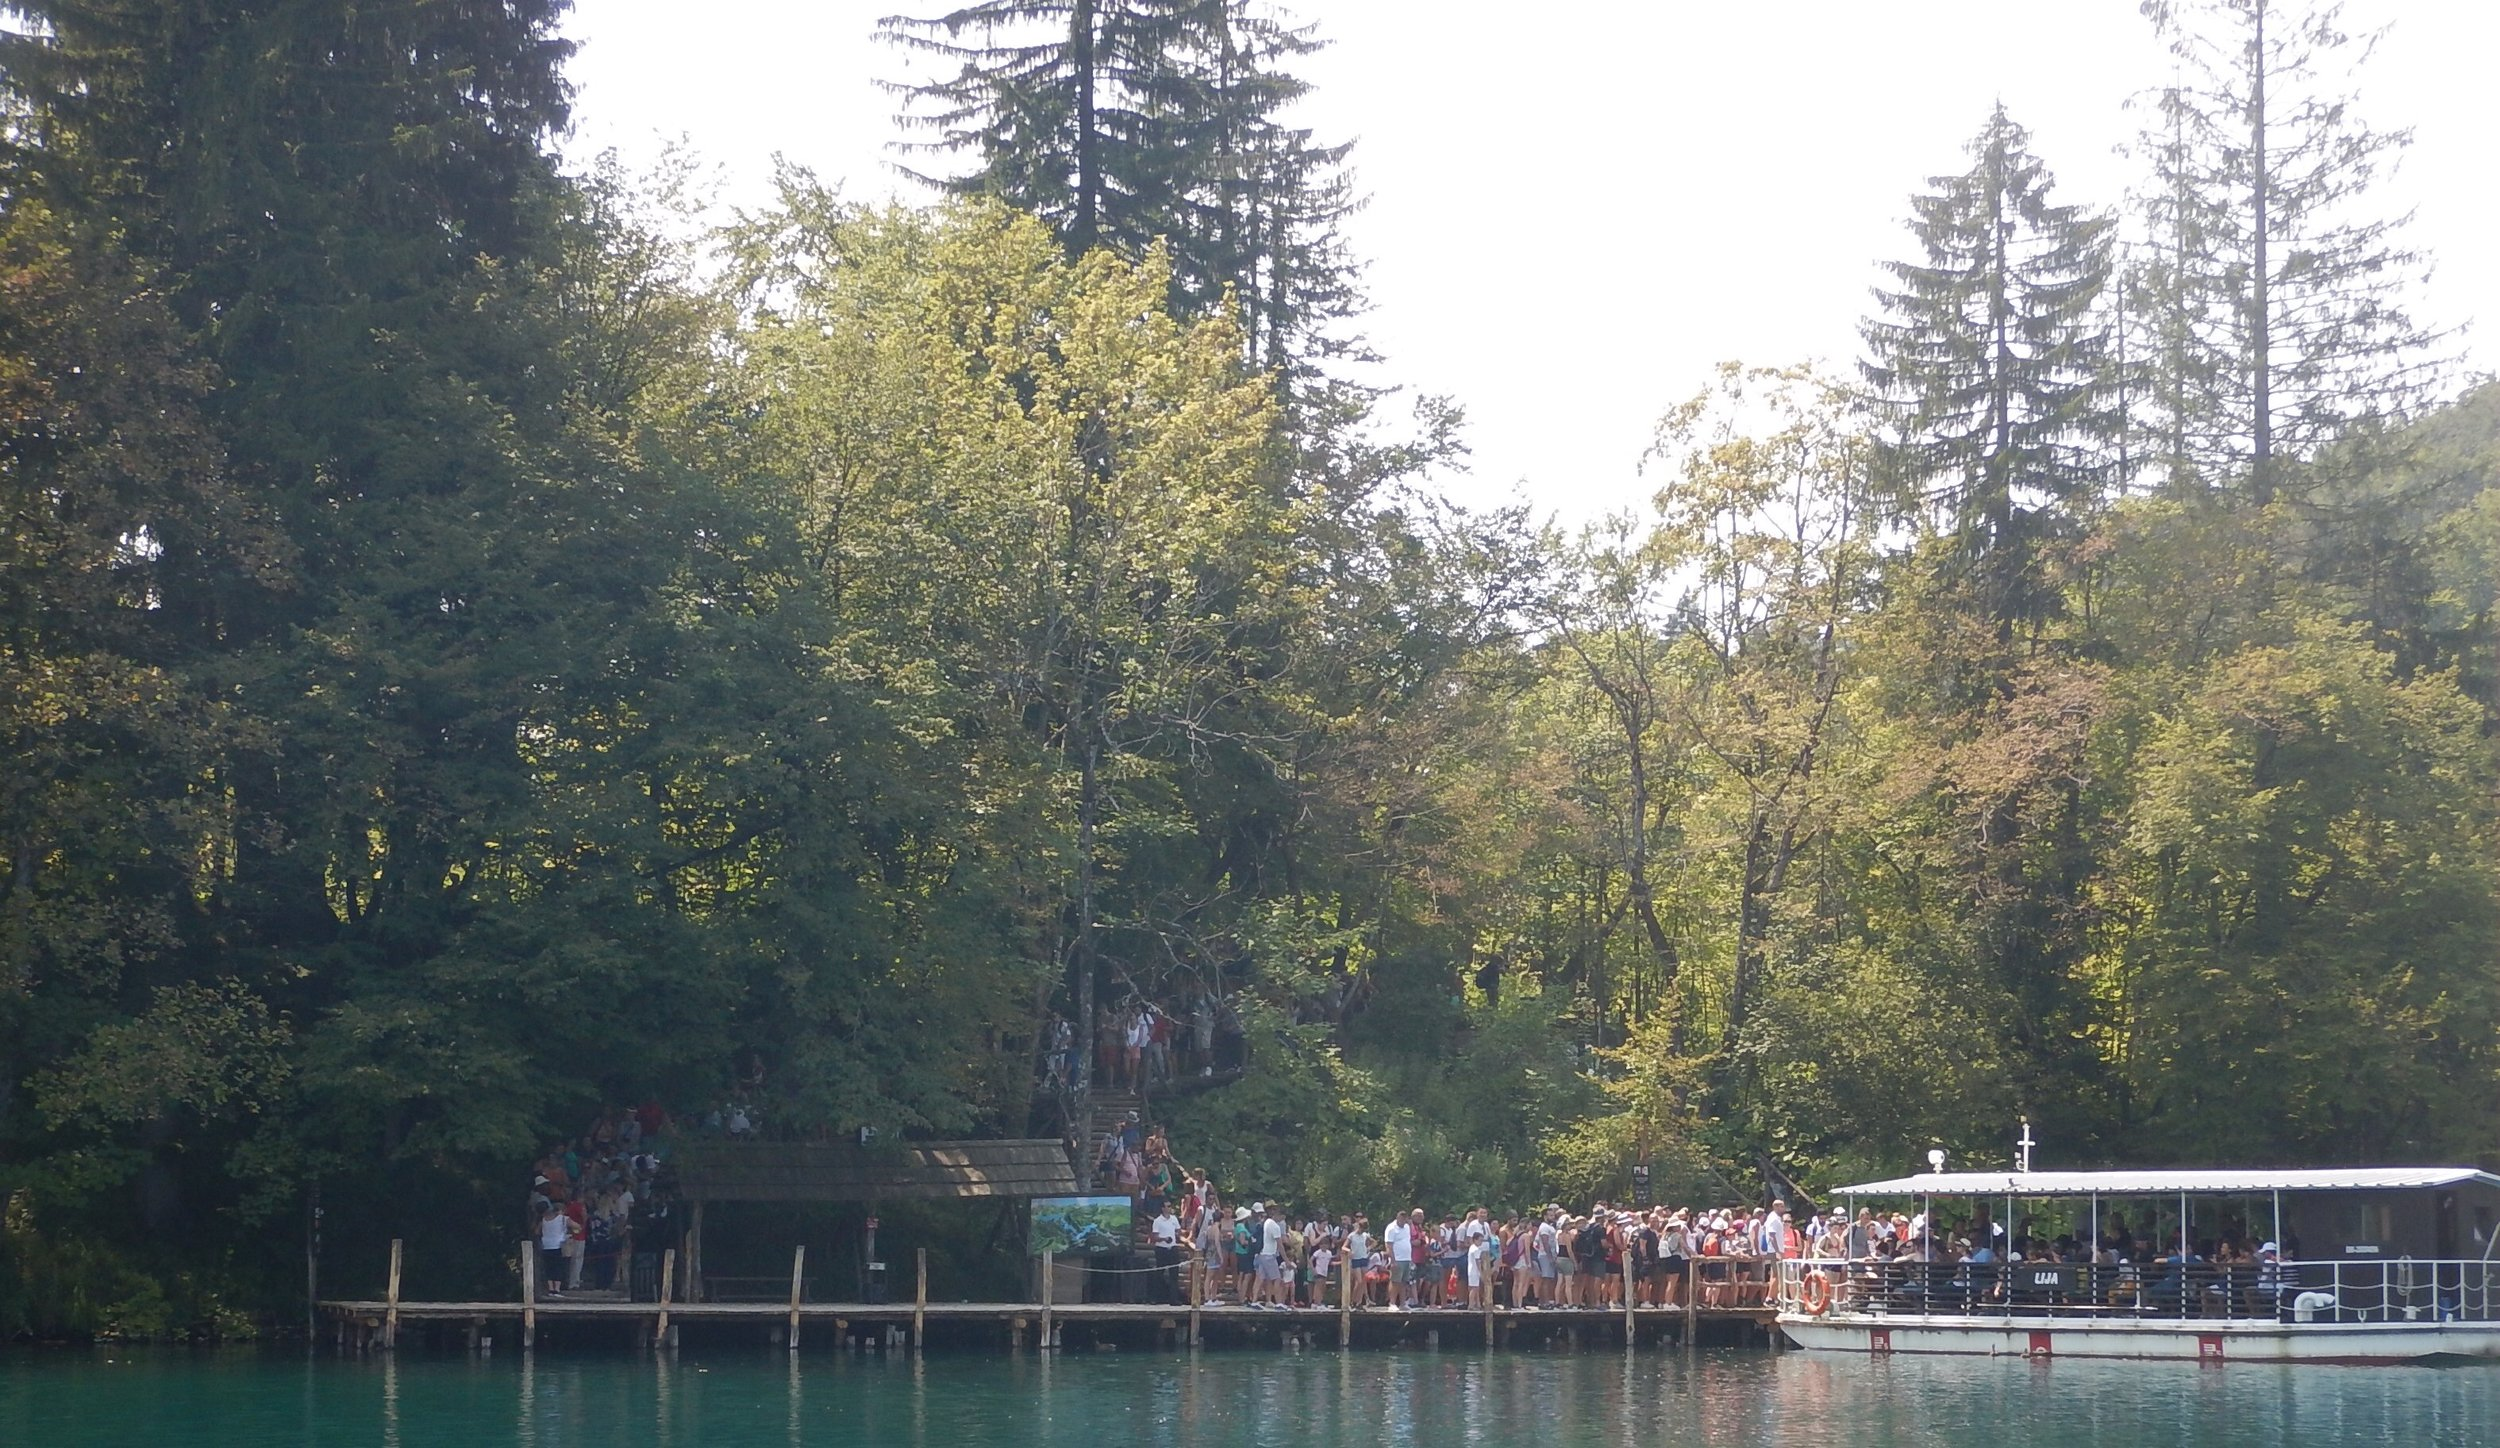 The queue here has about 350 people waiting for a boat. Queues in the early mornings are not quite as long.